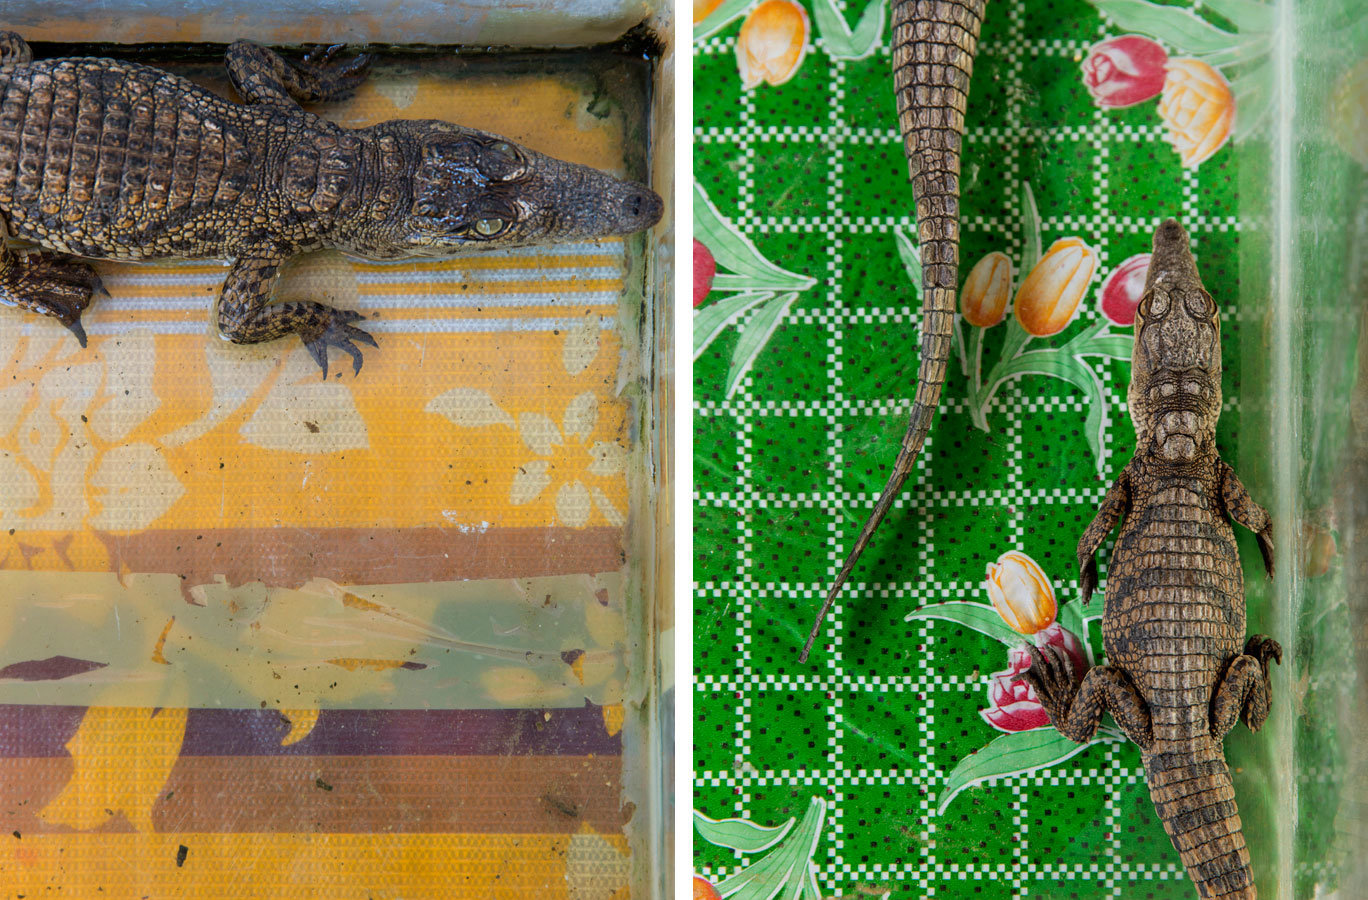 Young crocodiles in private residences - Gharb Soheil